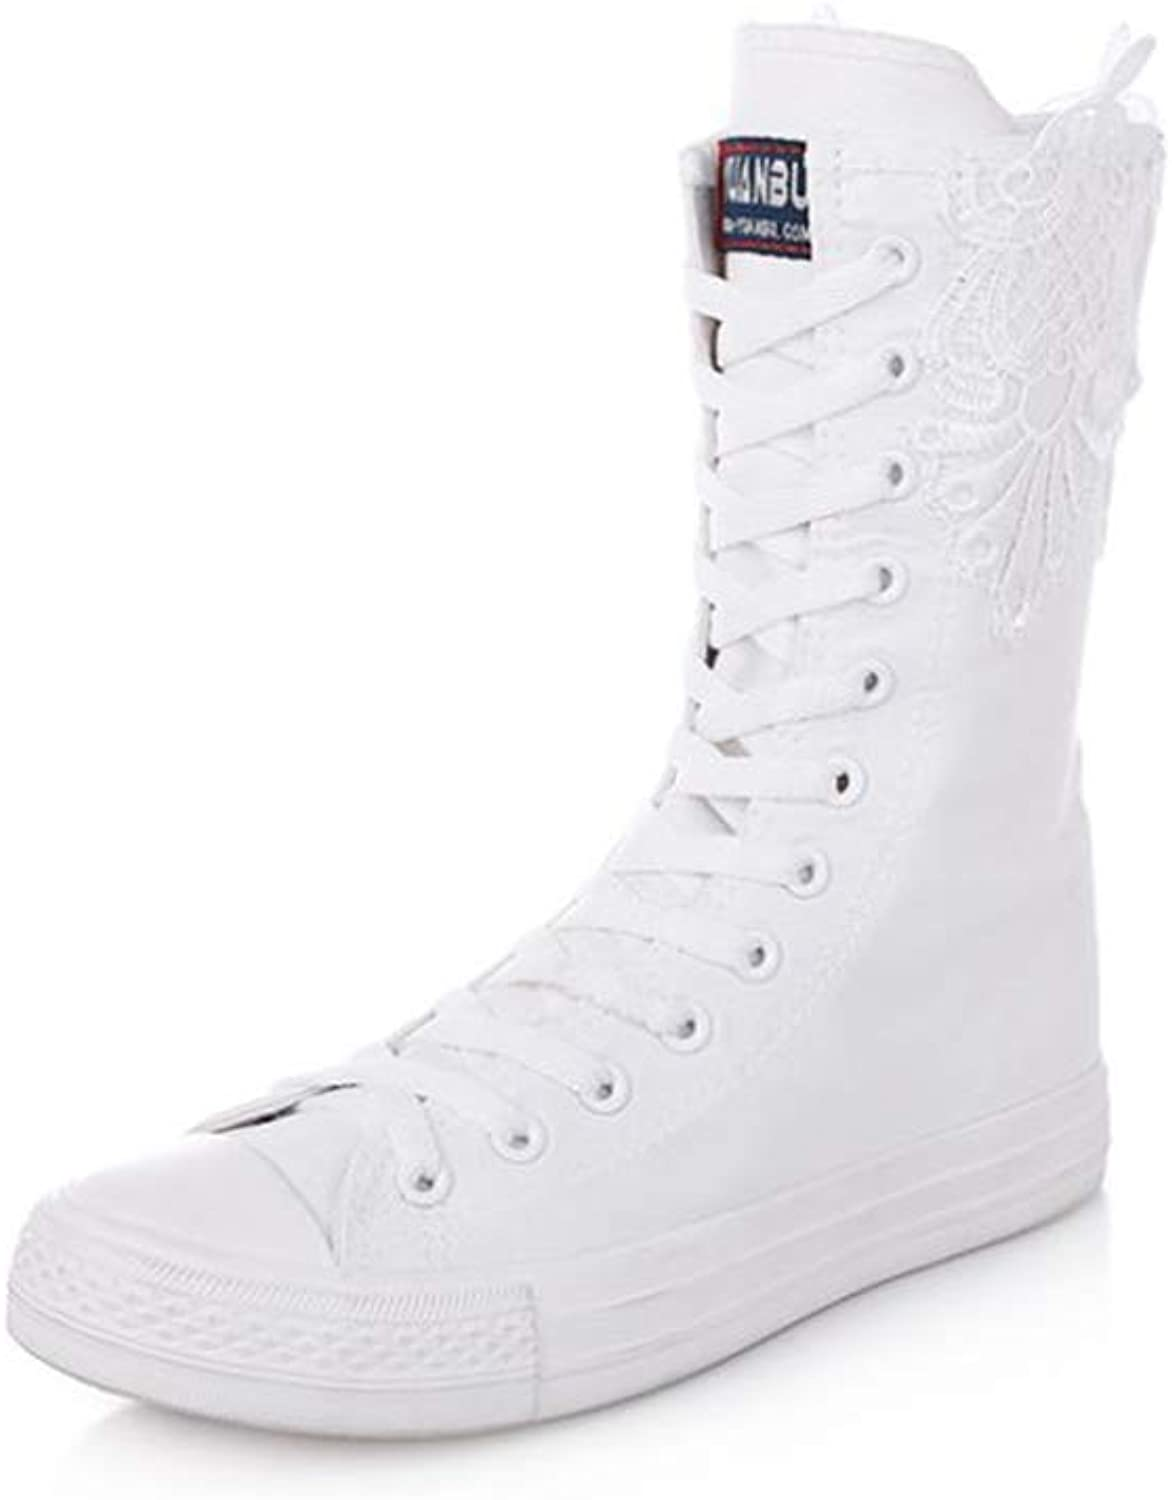 Fancyww Women's Floral Embroidered Dance Sneakers Punk Knee High Lace Up Canvas Boots